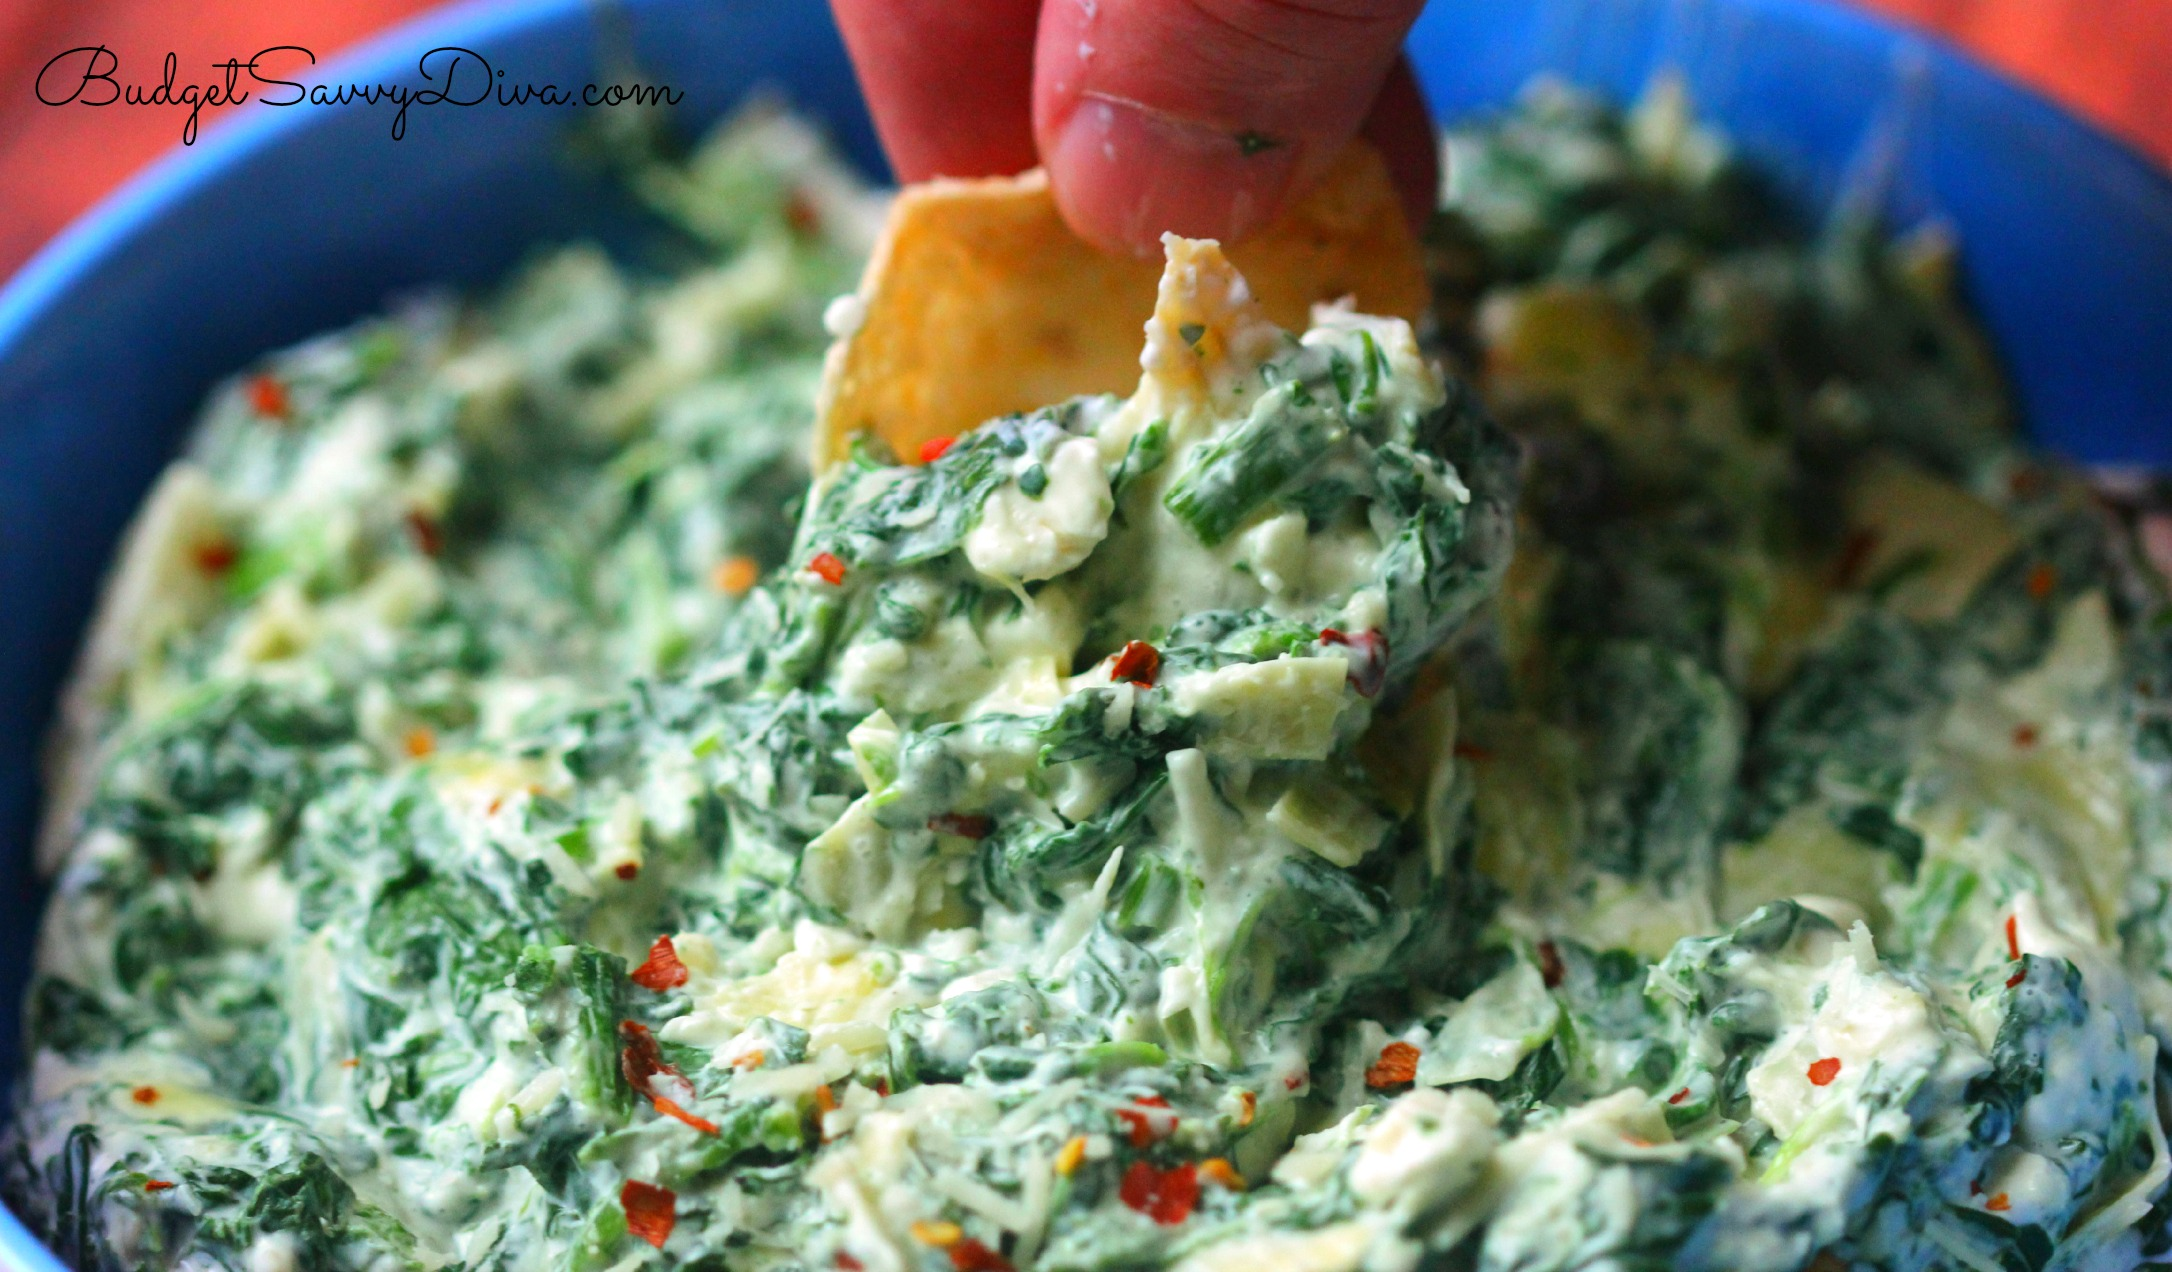 If you do make the Easy Spinach and Artichoke Dip Recipe please ...